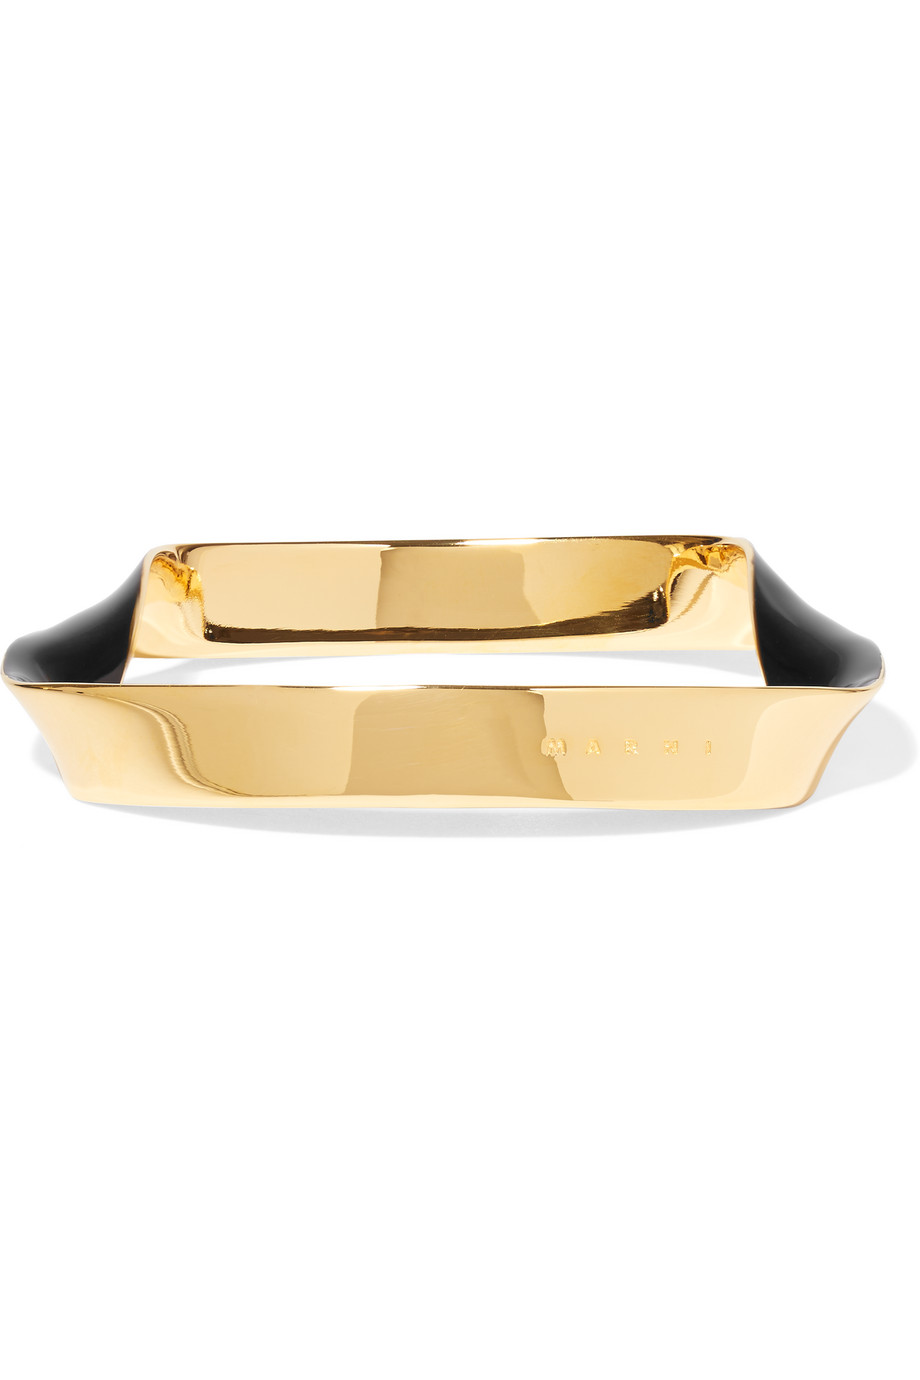 Marni Enameled Gold-Plated Bracelet, Black, Women's